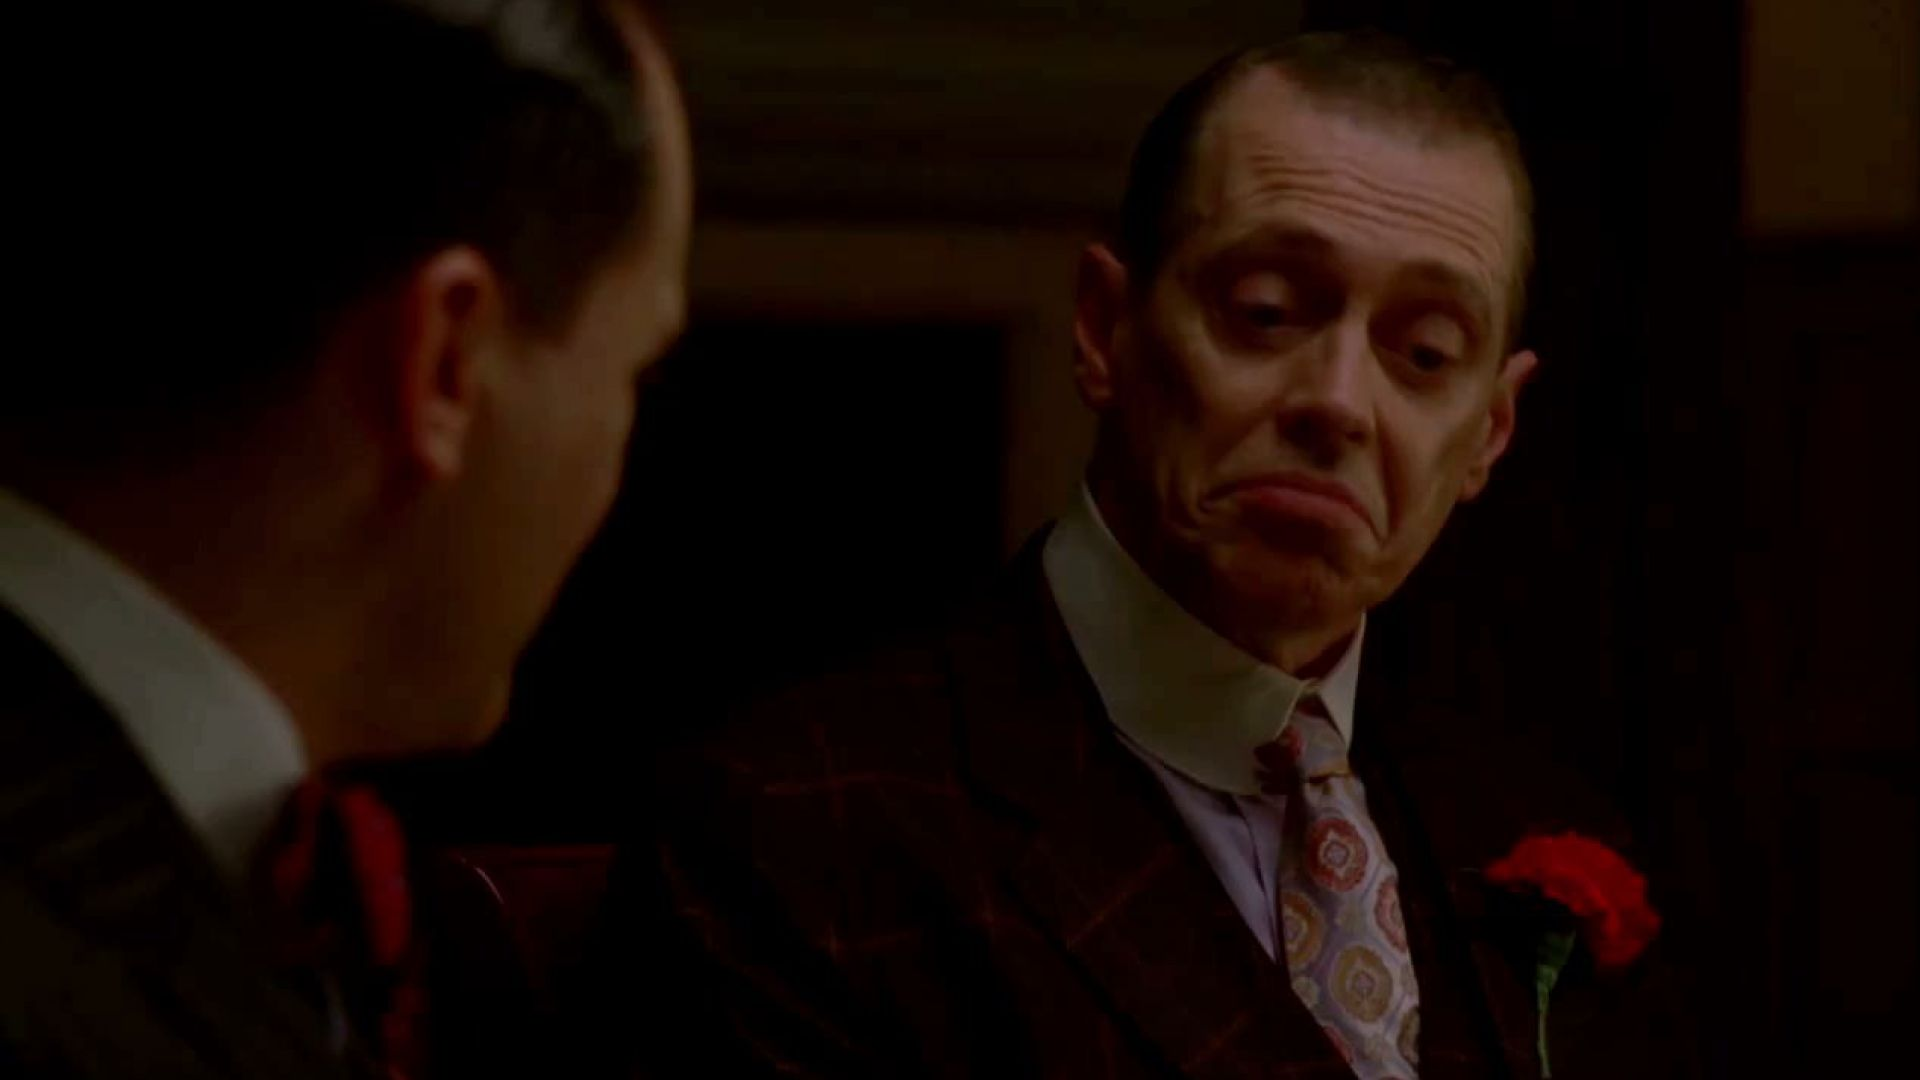 Boardwalk Empire Season 1 Summary